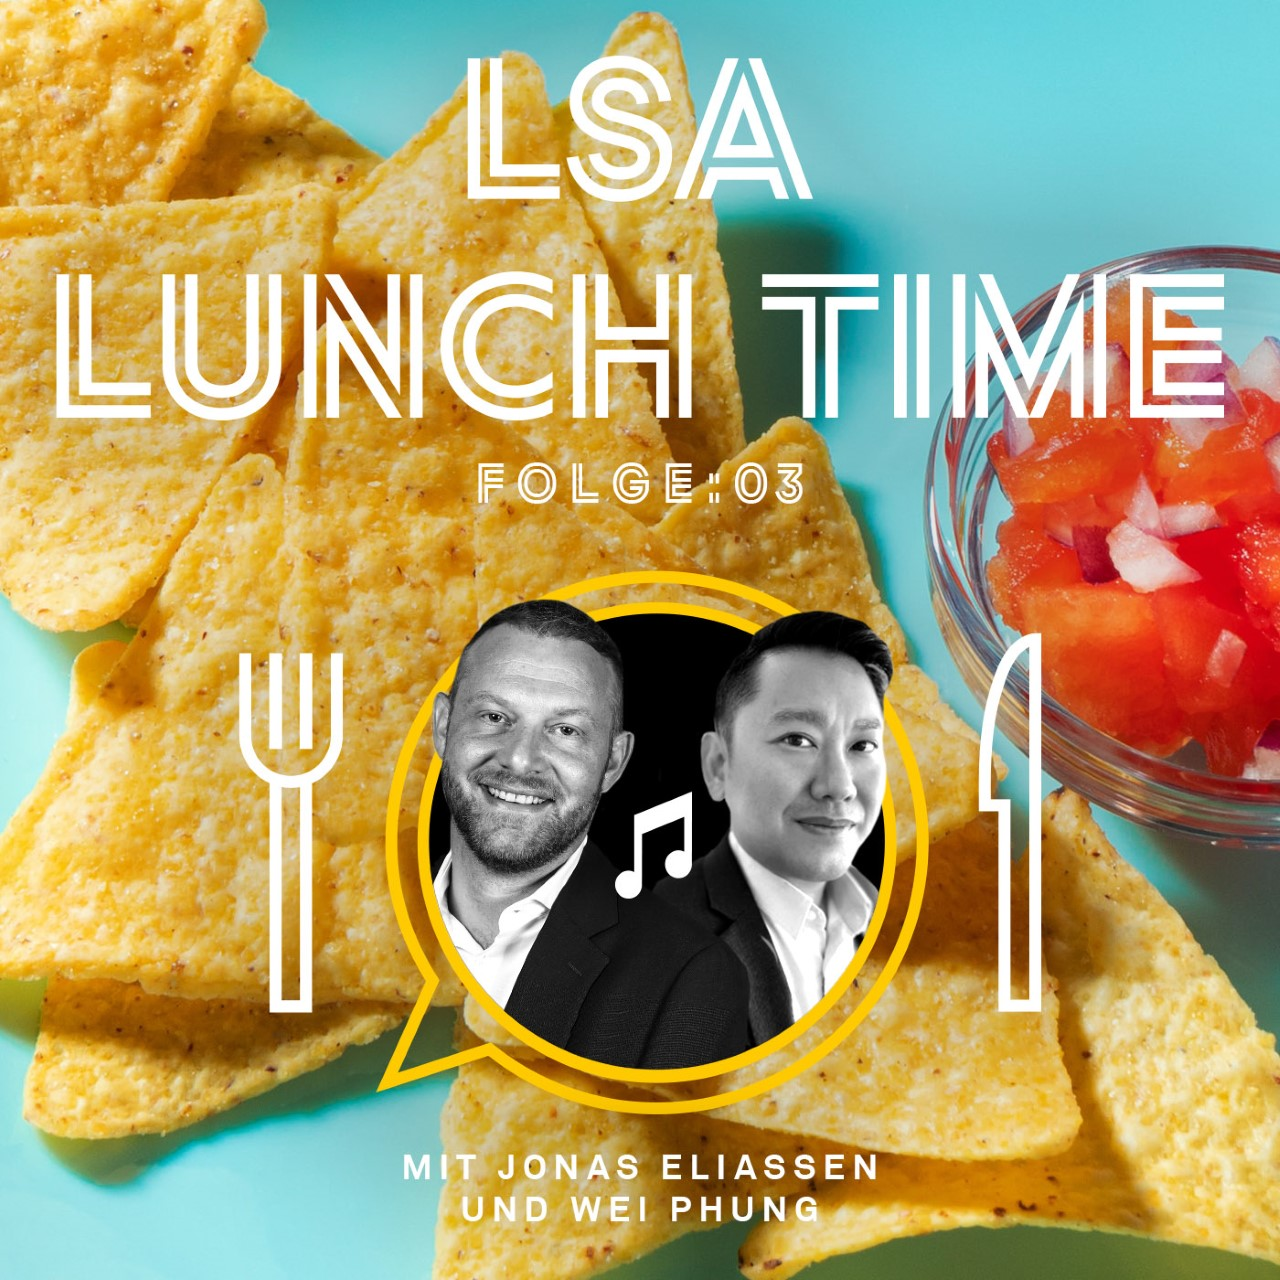 thumbnail_LSA_Podcast_LunchTime_1400x1400px_Post_V01